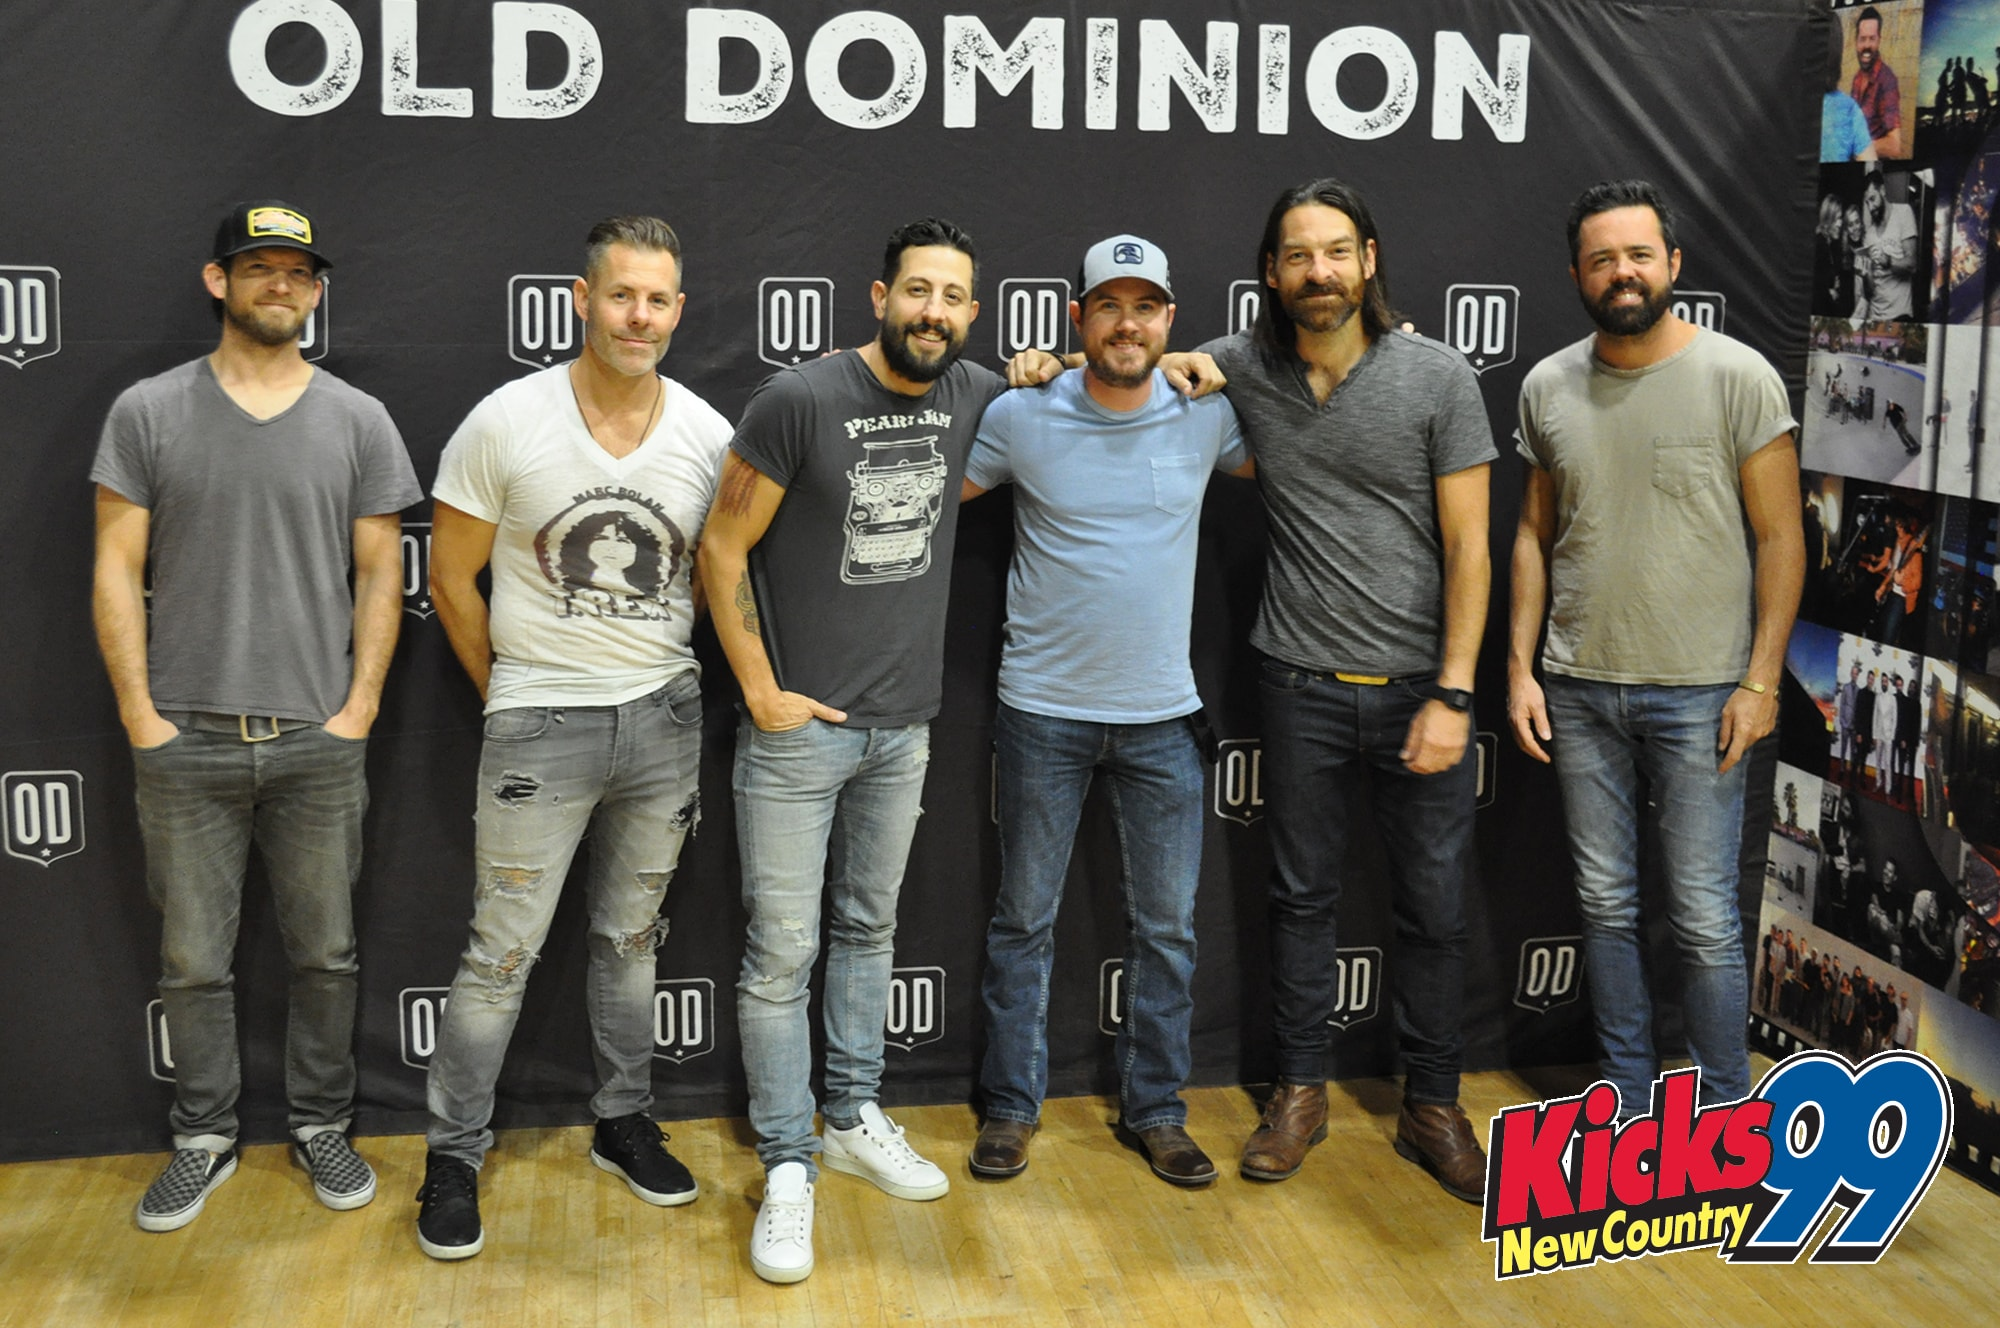 Old Dominion Sound Check Party Meet Greet